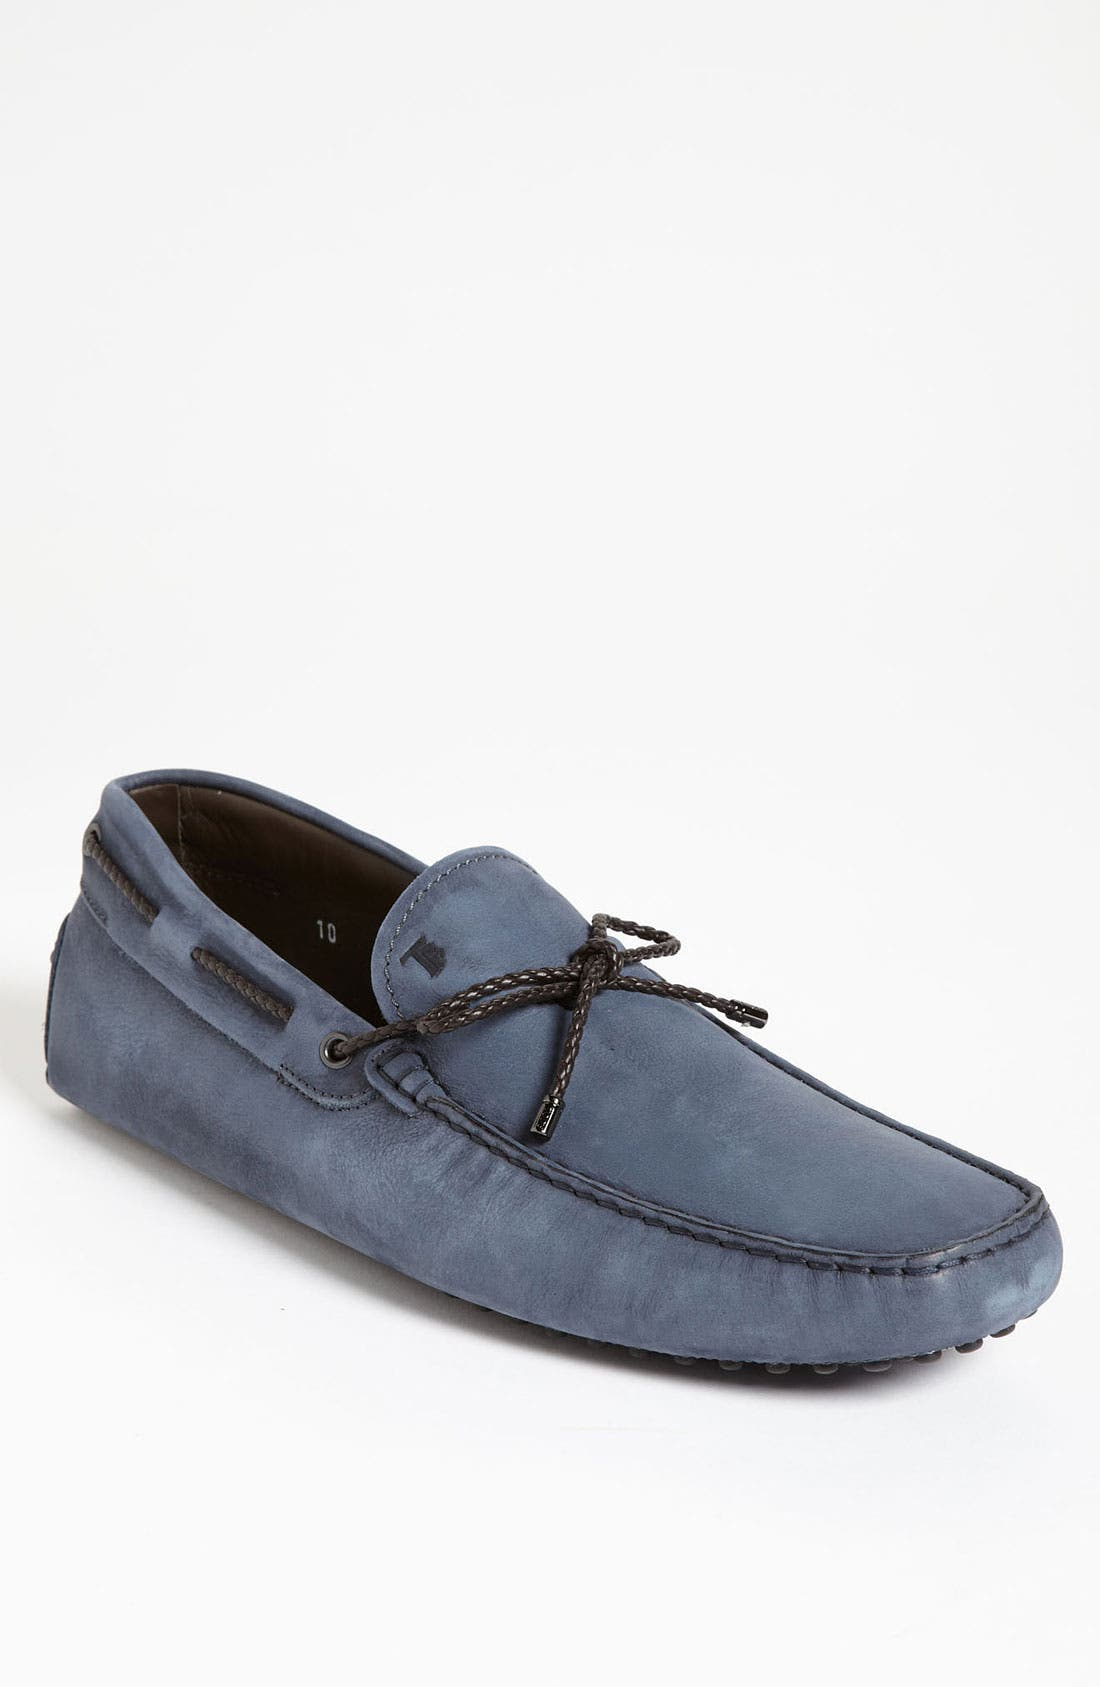 Alternate Image 1 Selected - Tod's 'Laccetto' Driving Shoe